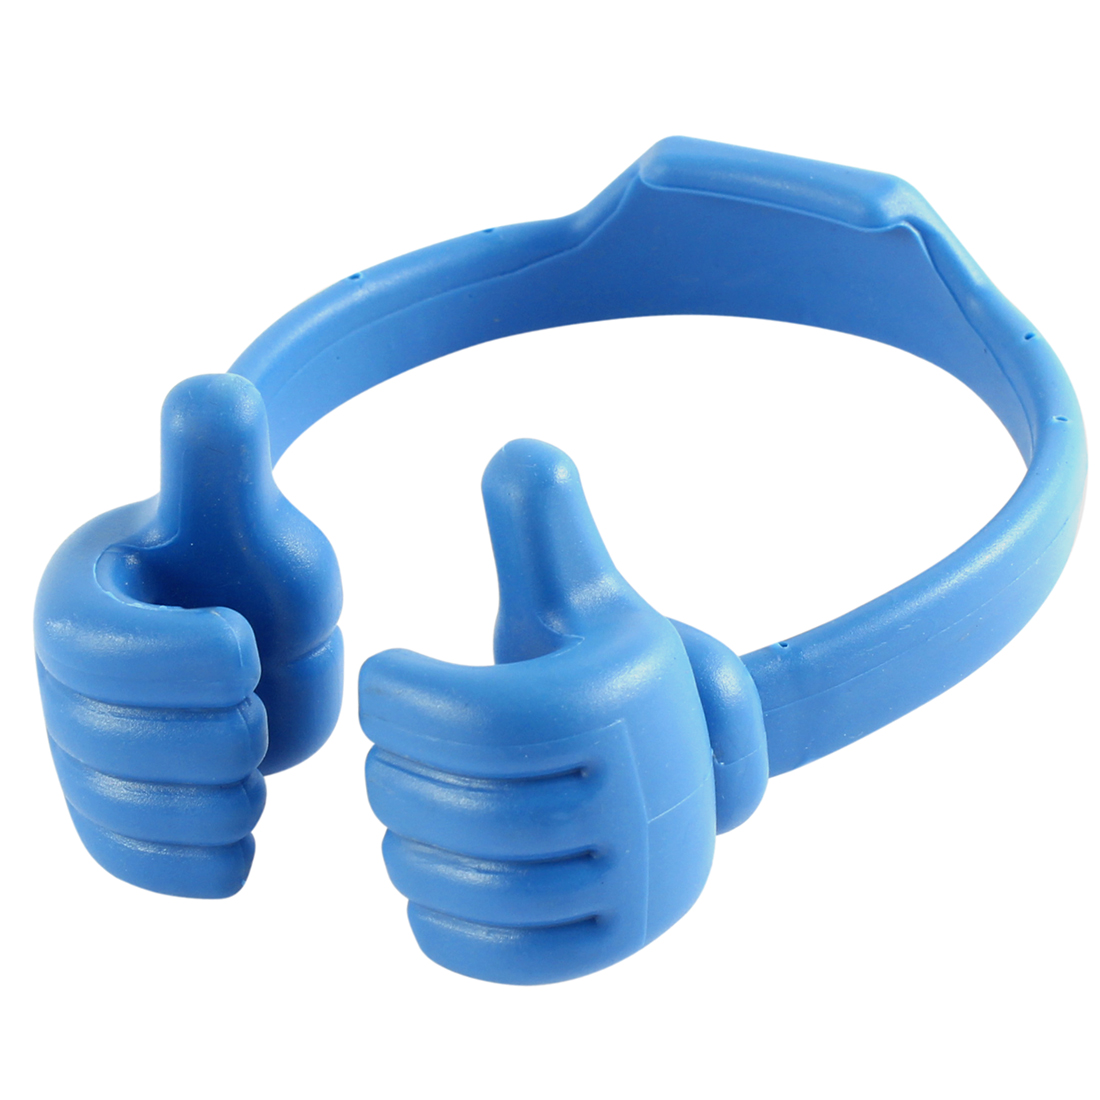 Adjustable Blue Plastic Thumb Shaped Stand Holder for Cell Phone Mp3 MP4 Tablet